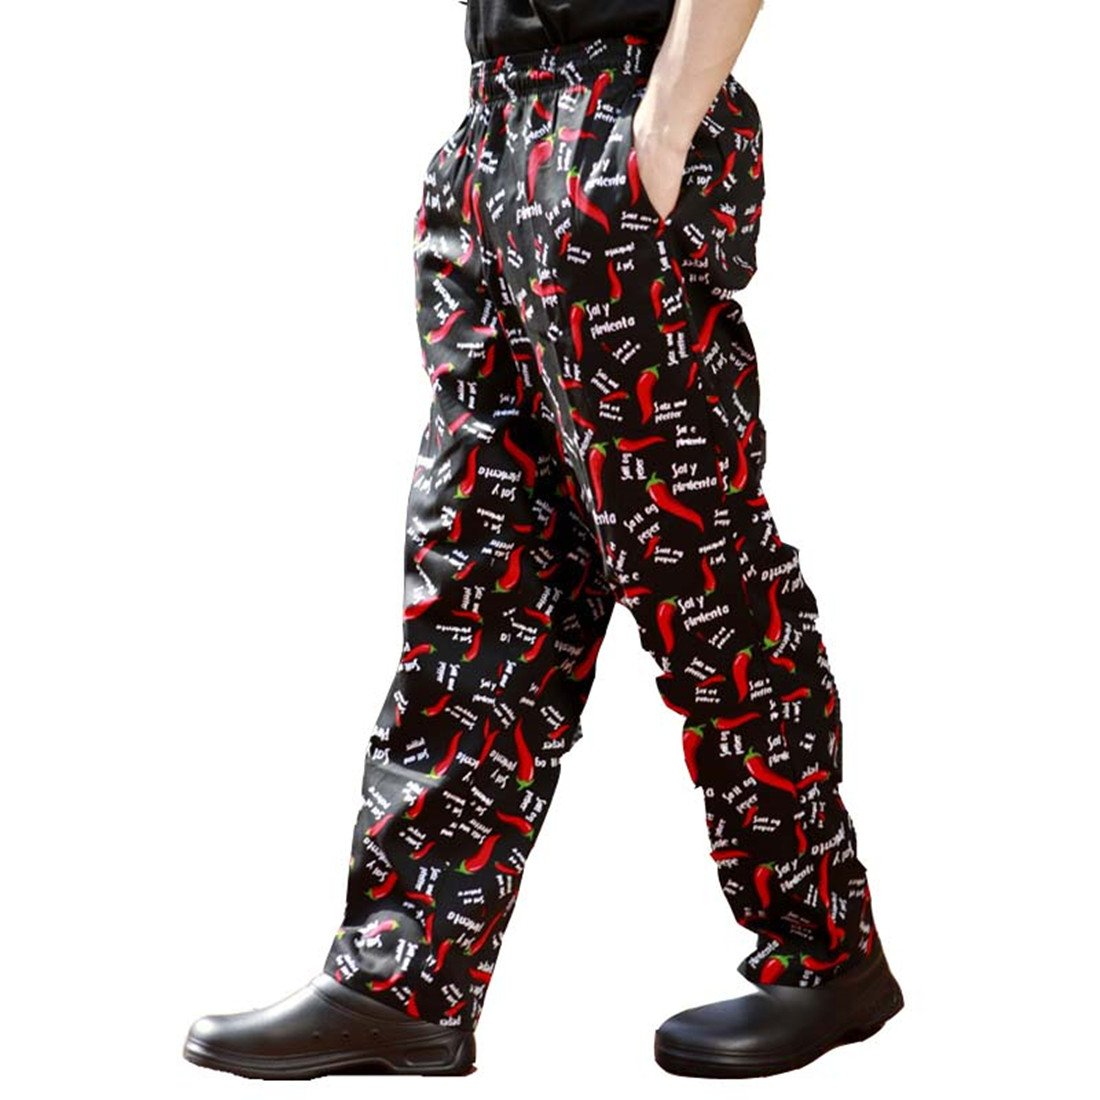 Black and red Chili or kitchenware Printed Chef Pant 100% Cotton ChefsUniforms